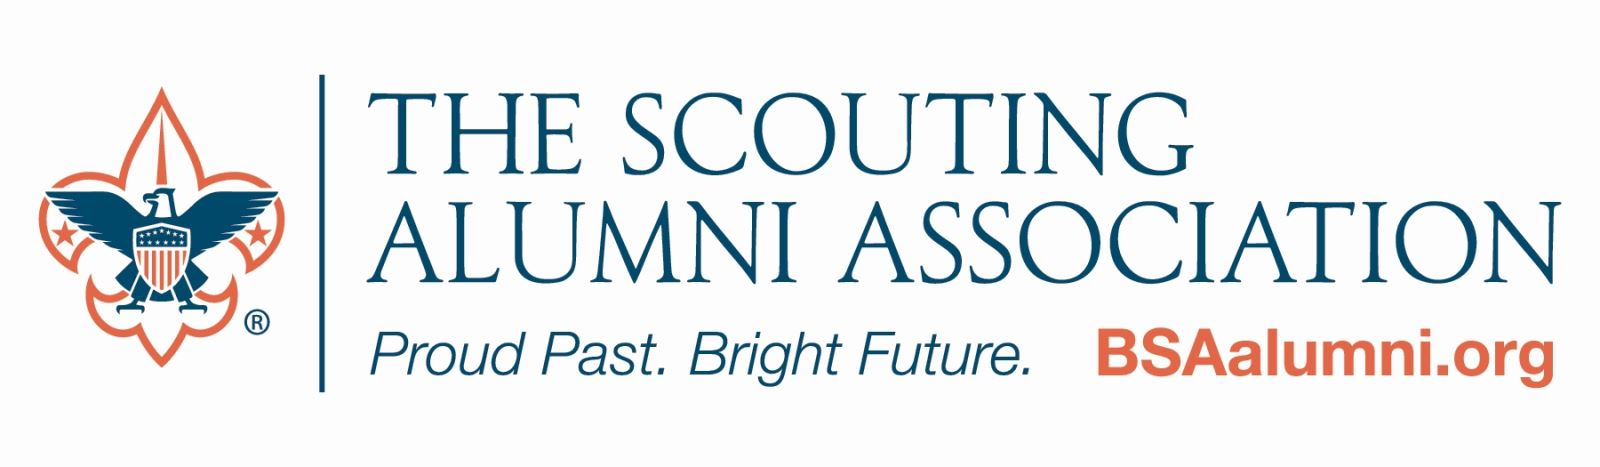 The Scouting Alumni Association